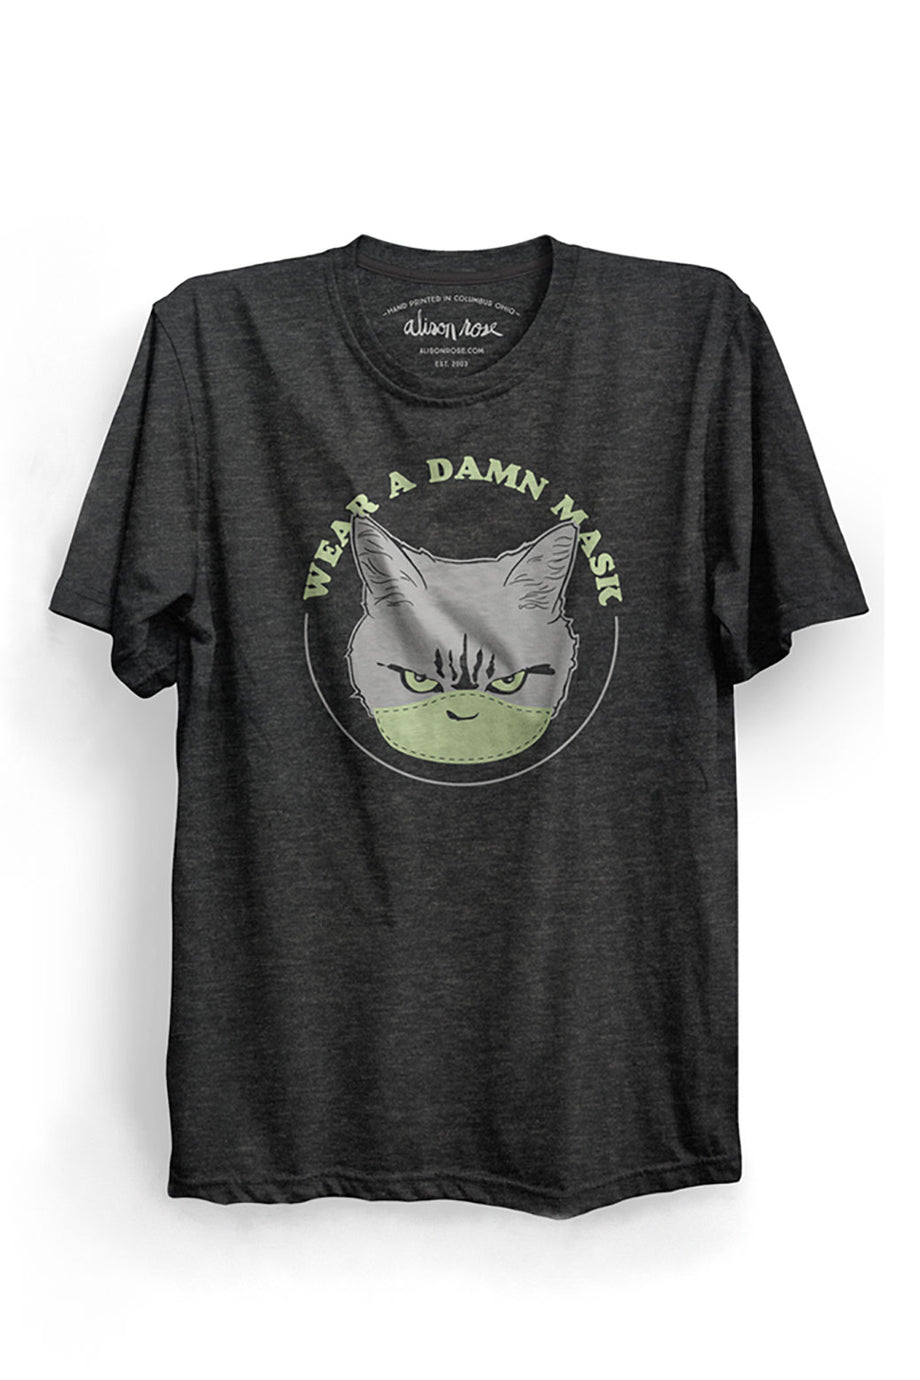 Wear a Damn Mask Mens T-shirt